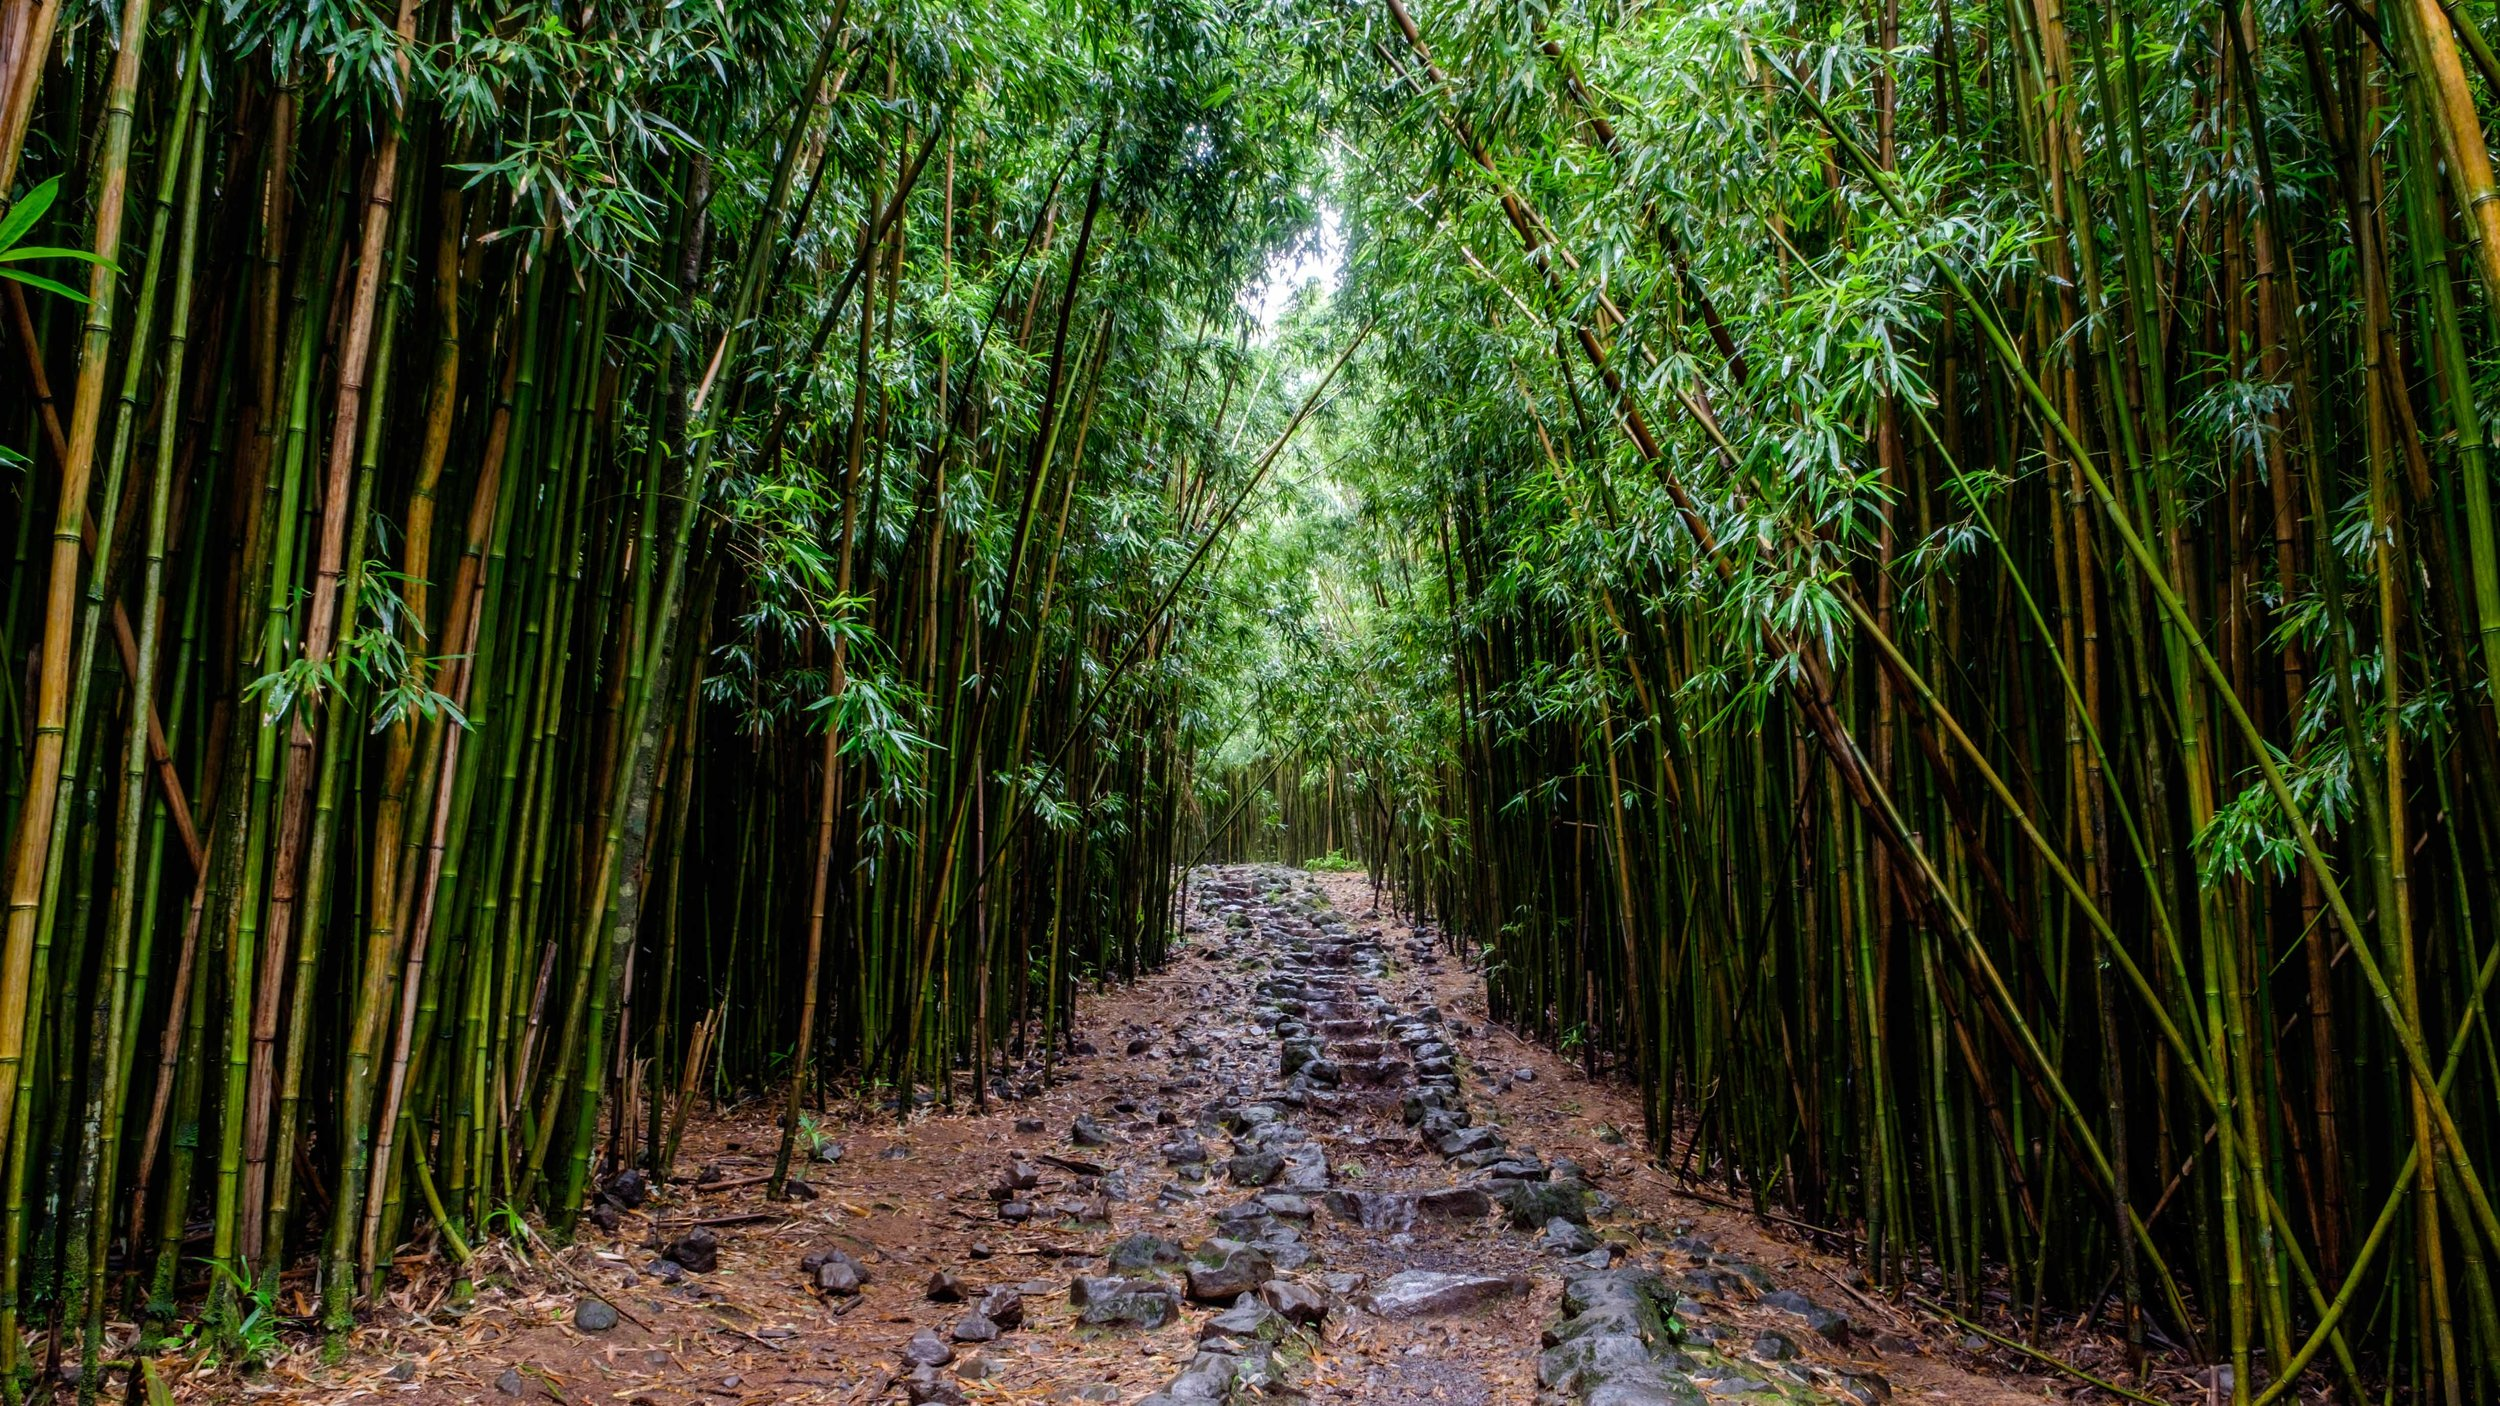 Walking through ancient bamboo.